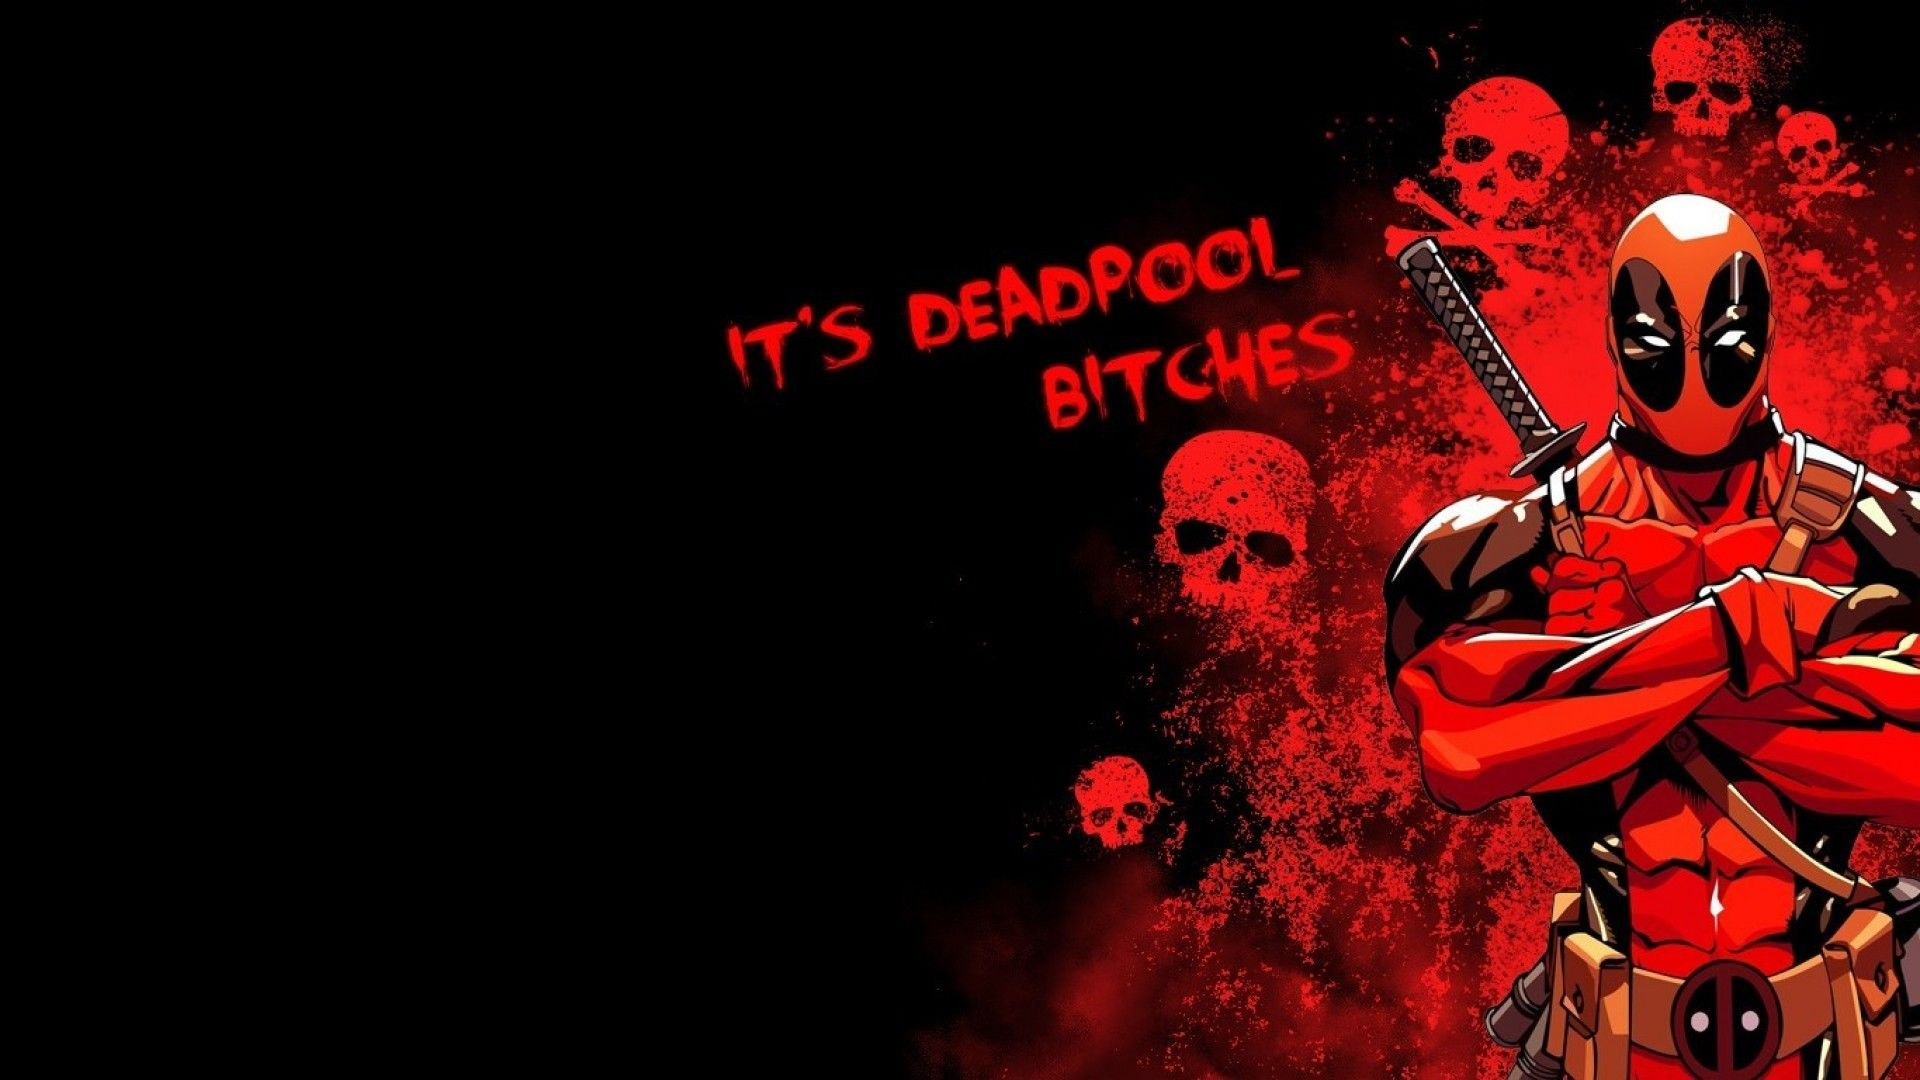 Hd Wallpapers Best Collection Deadpool Wallpapers Hd Group 73